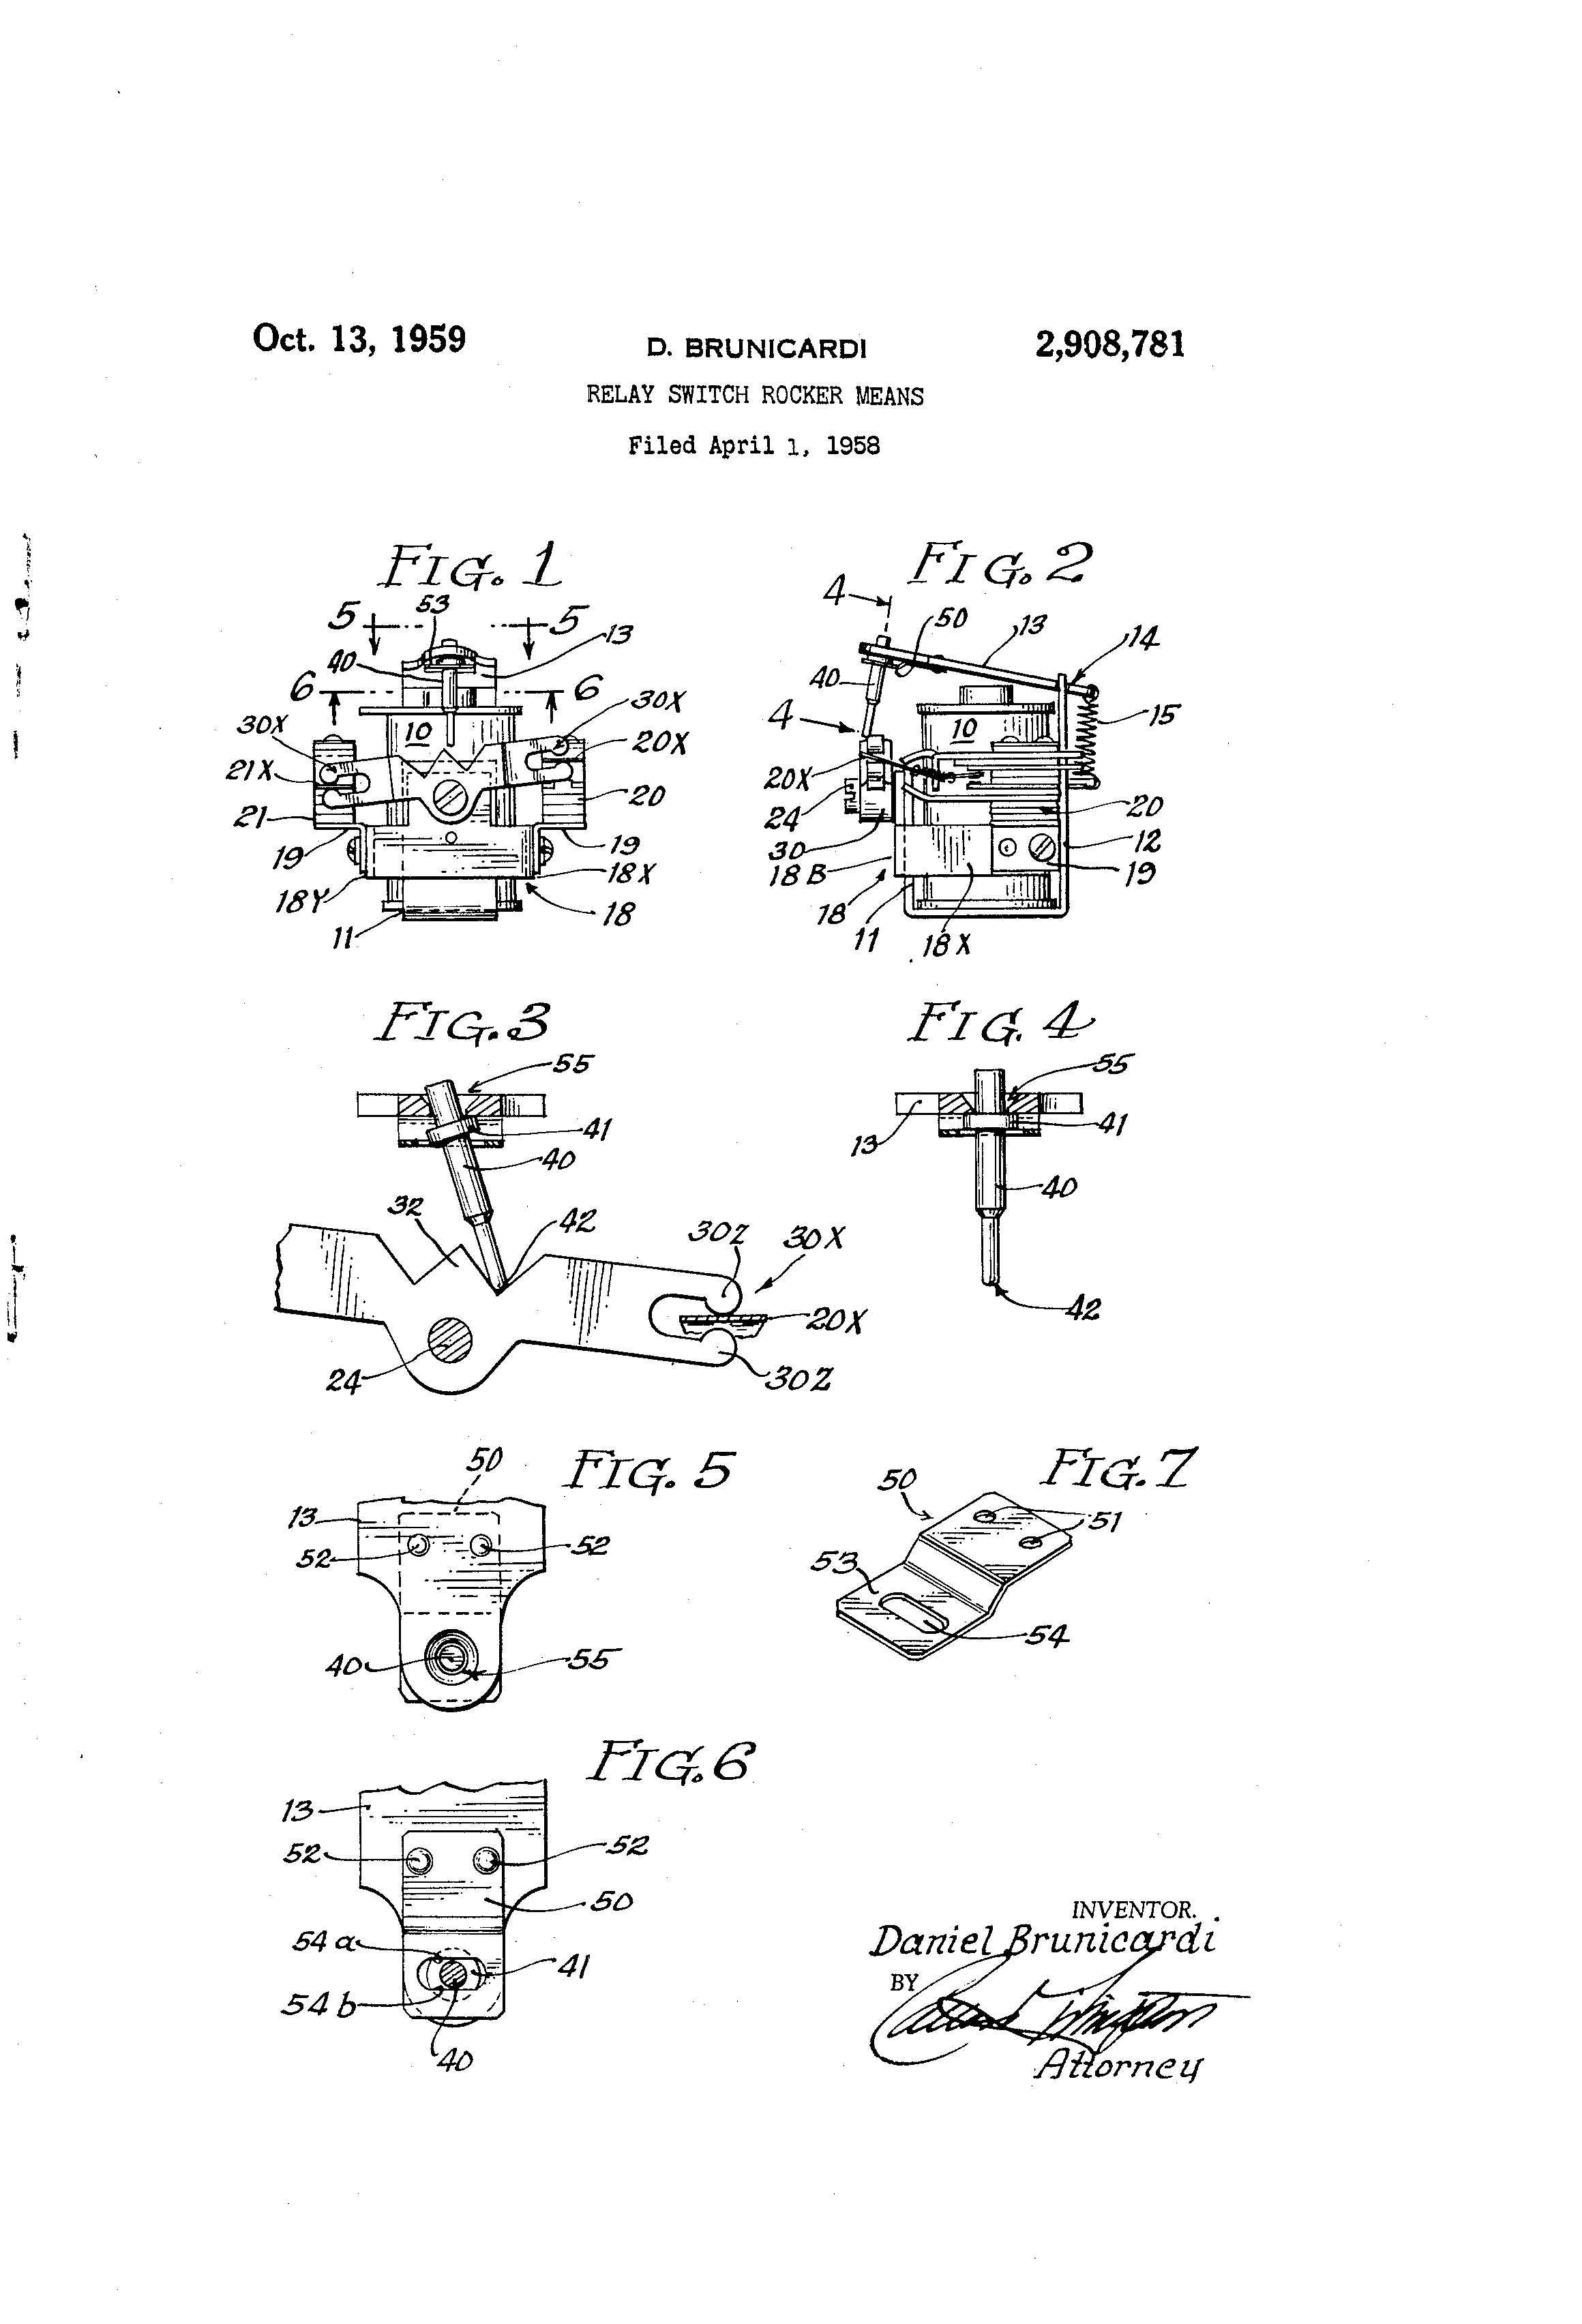 Patent Us2908781 Relay Switch Rocker Means Google Patents Drawing